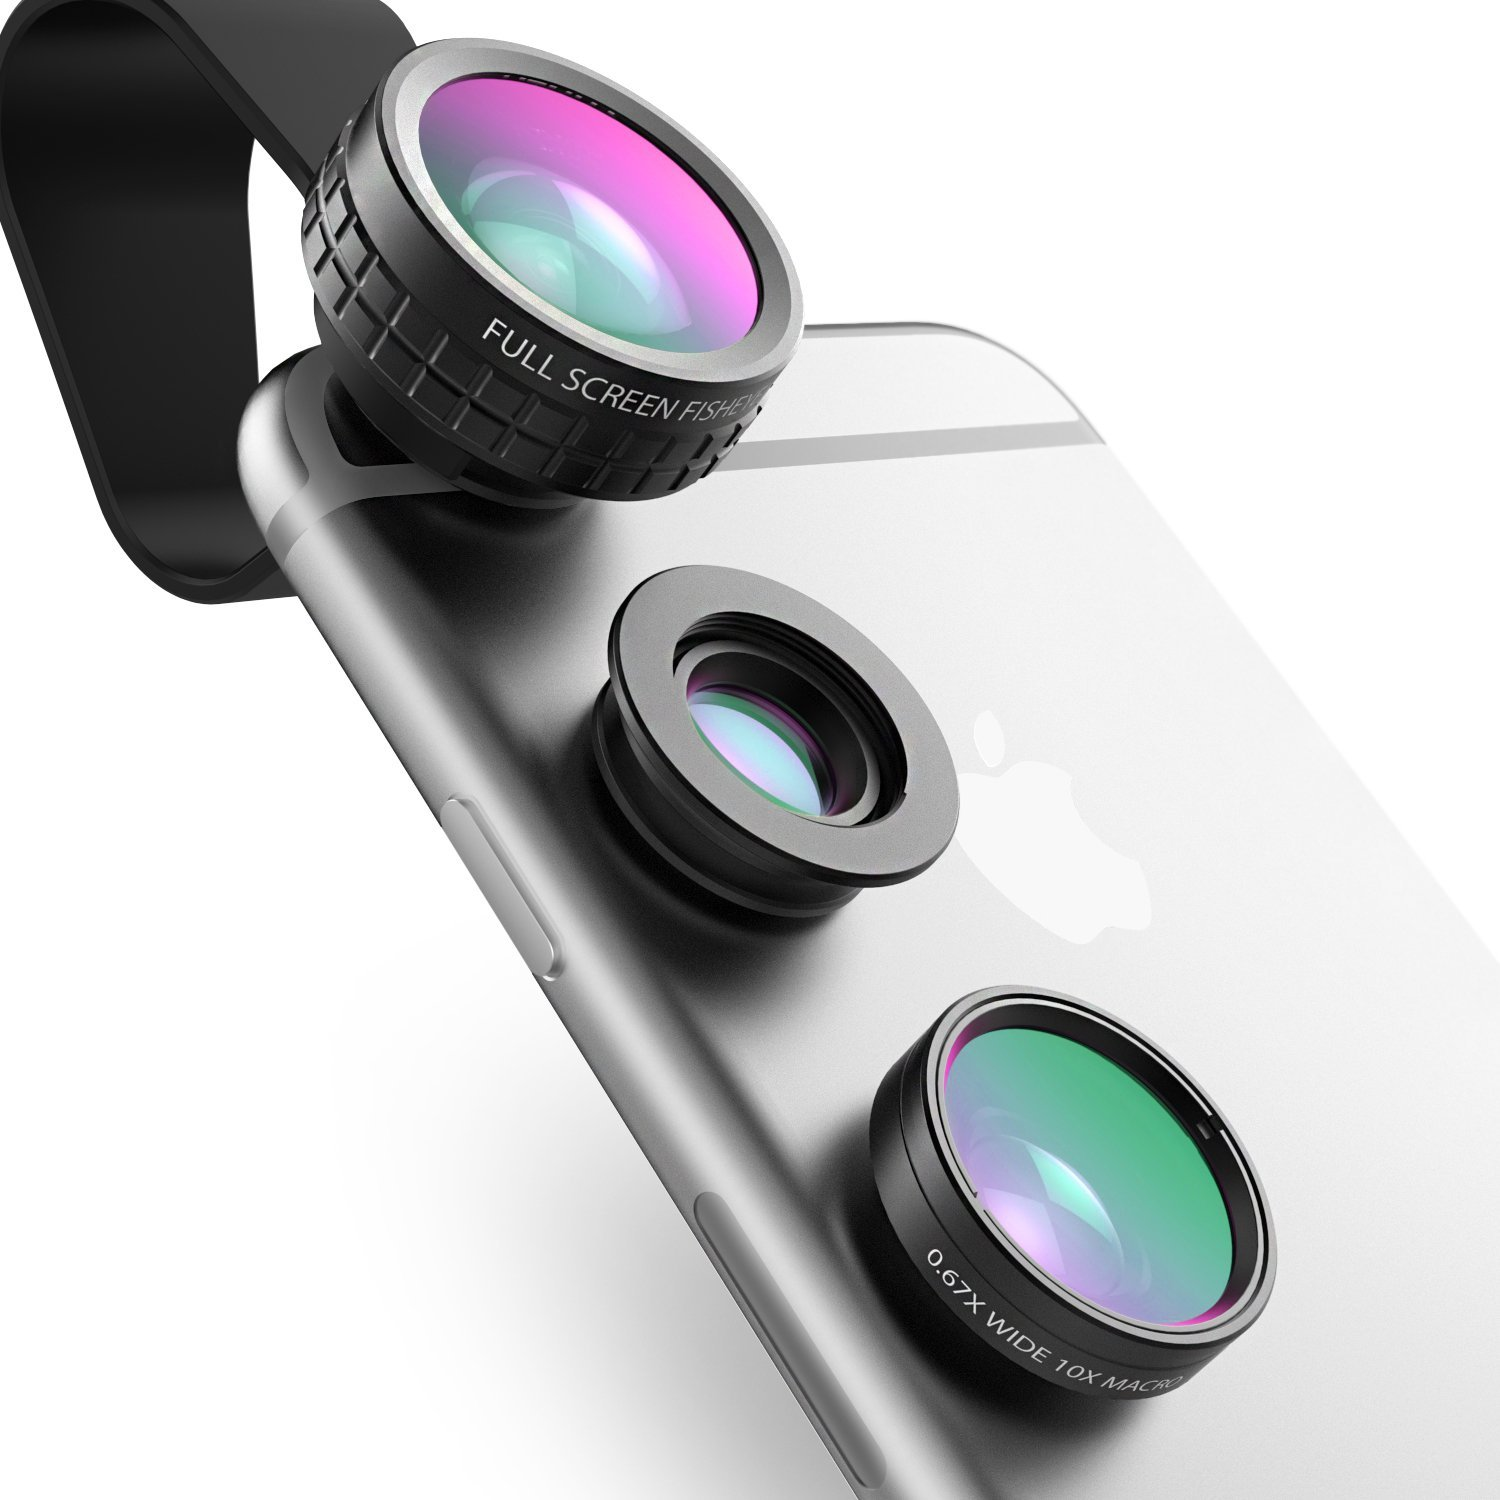 AUKEY Phone Camera Lens Kit 3 in 1 Clip On 180°Fisheye Lens + 110°Wide Angle Lens + 10X Macro Lens for iPhone / iPad / Huawei / Sony / Samsung and Other Smartphone and Tablets